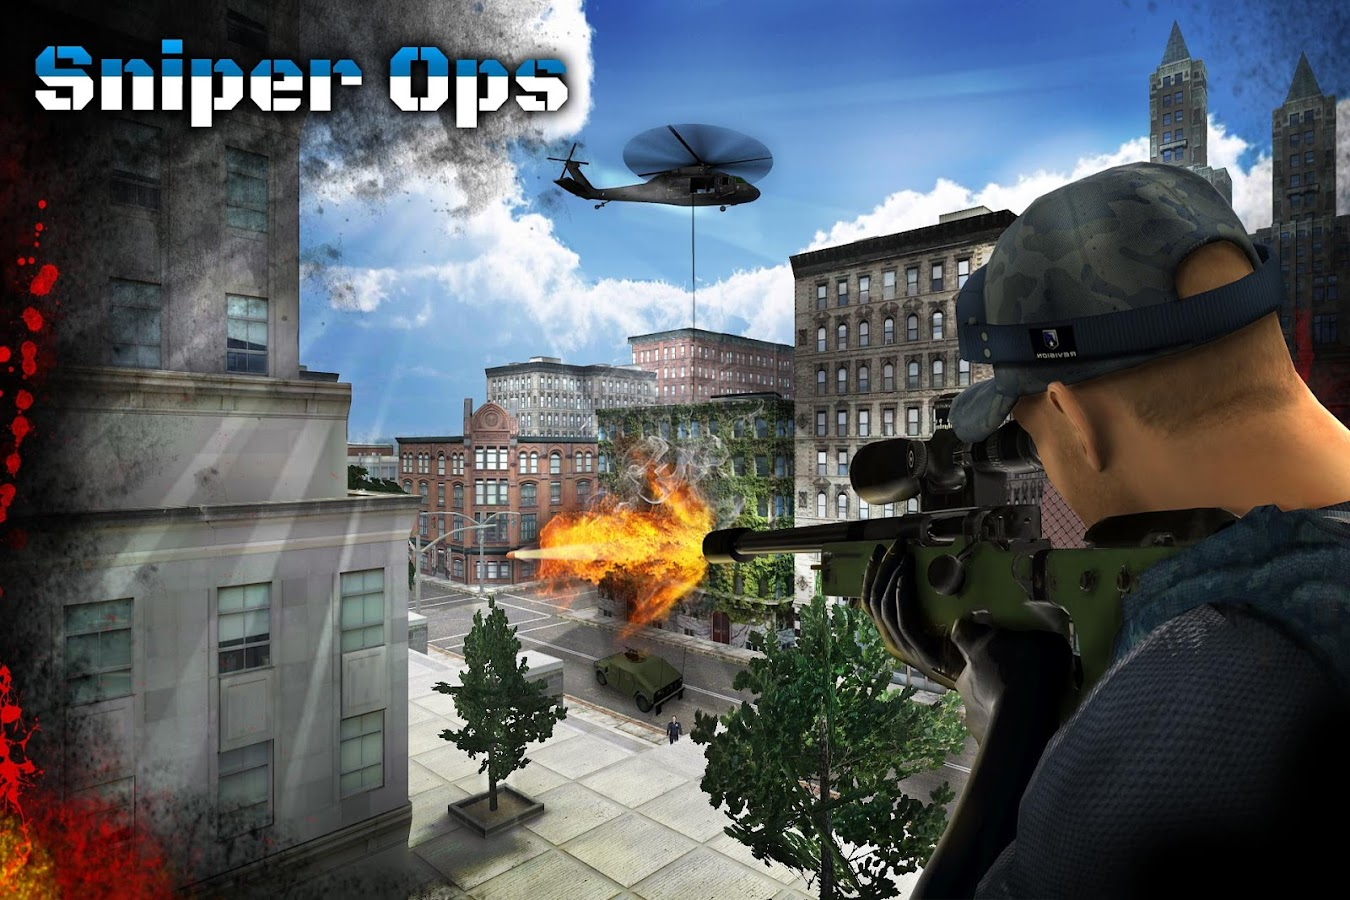 Sniper Ops - 3D Shooting Game Screenshot 15